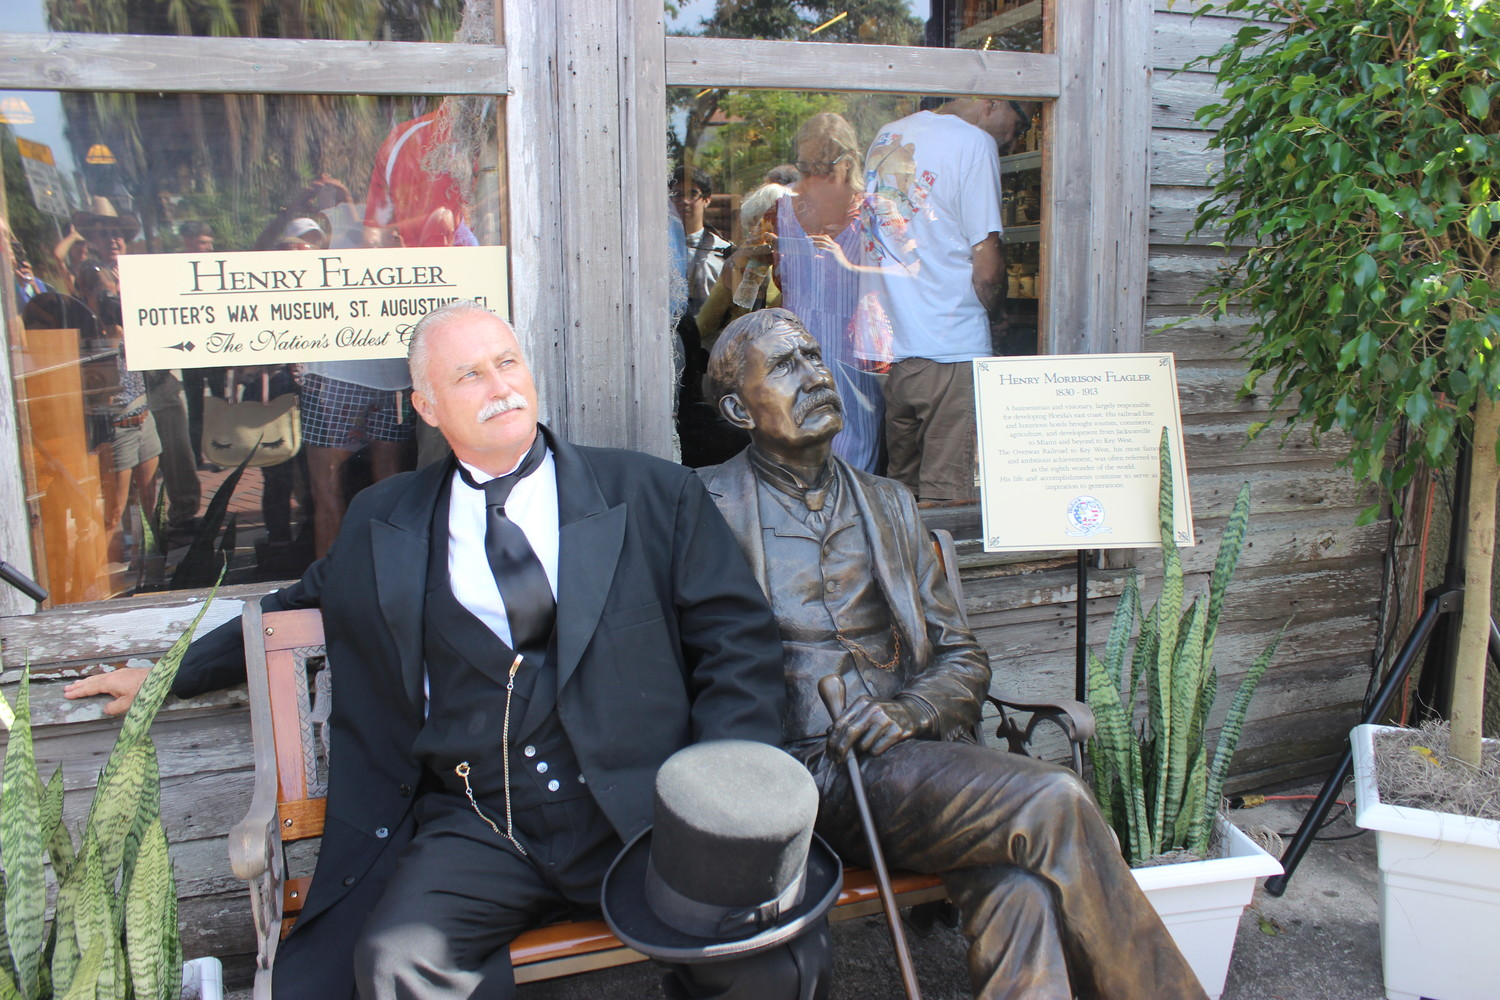 John Stavely sits next to the new Henry Flagler bronze sculpture outside Potter's Wax Museum in downtown St. Augustine.